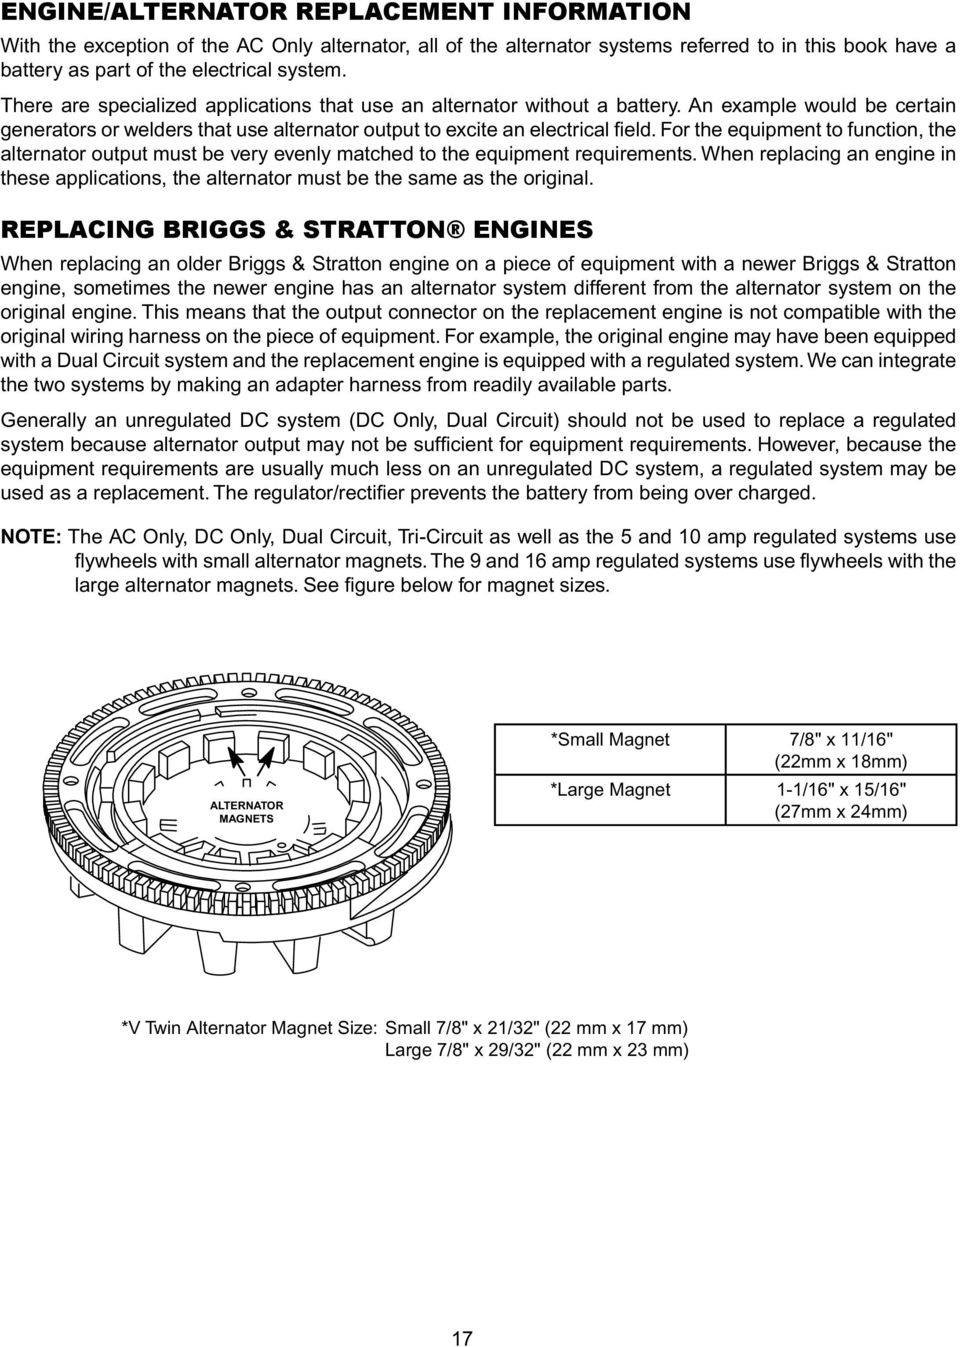 Engine Alternator Repower Guide Pdf Stator Diode Wire Wiring Harness For Briggs And The Equipment To Function Output Must Be Very Evenly Matched